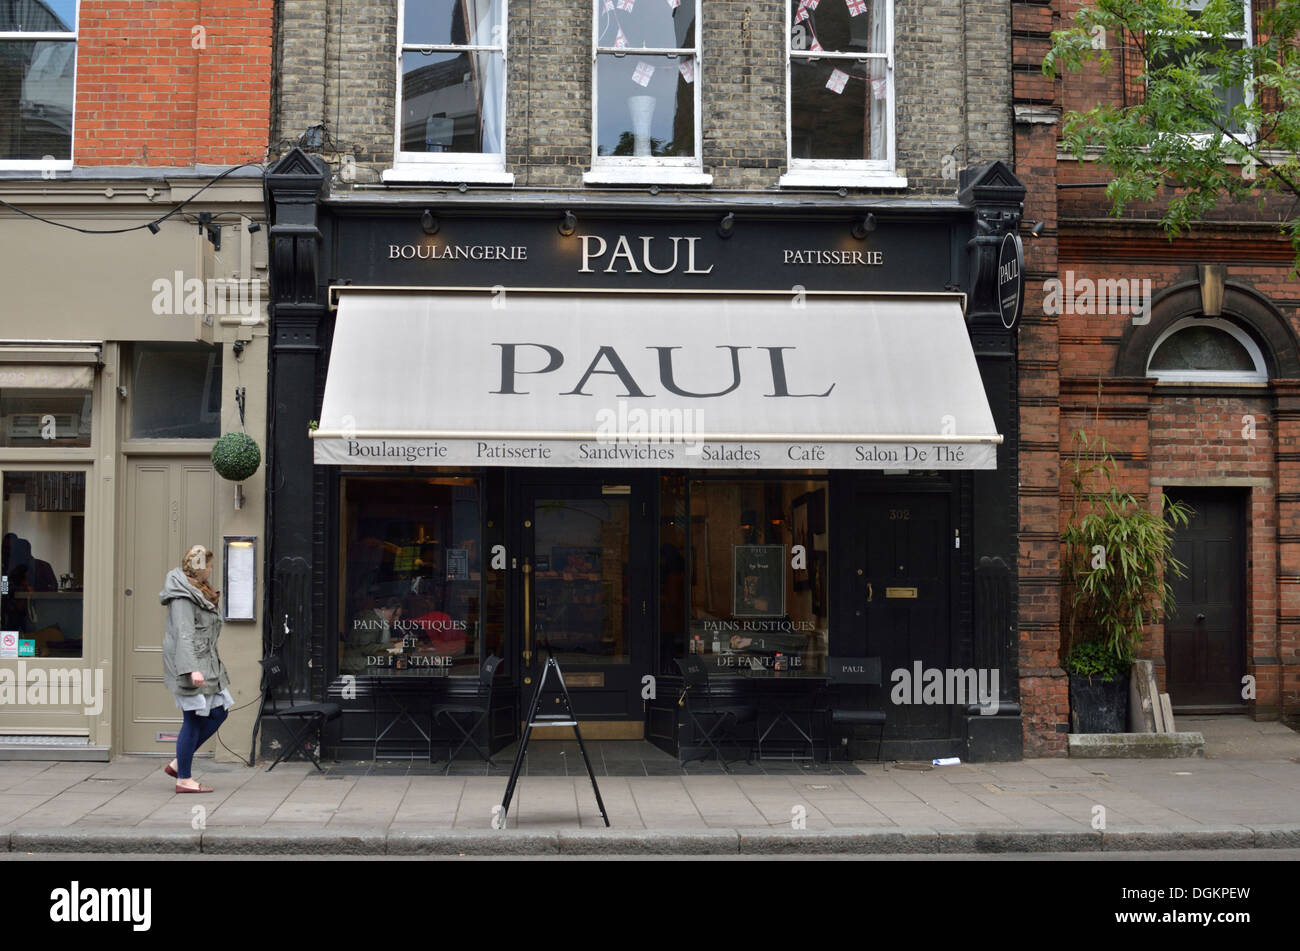 Paul boulangerie and patisserie on Upper Street. - Stock Image